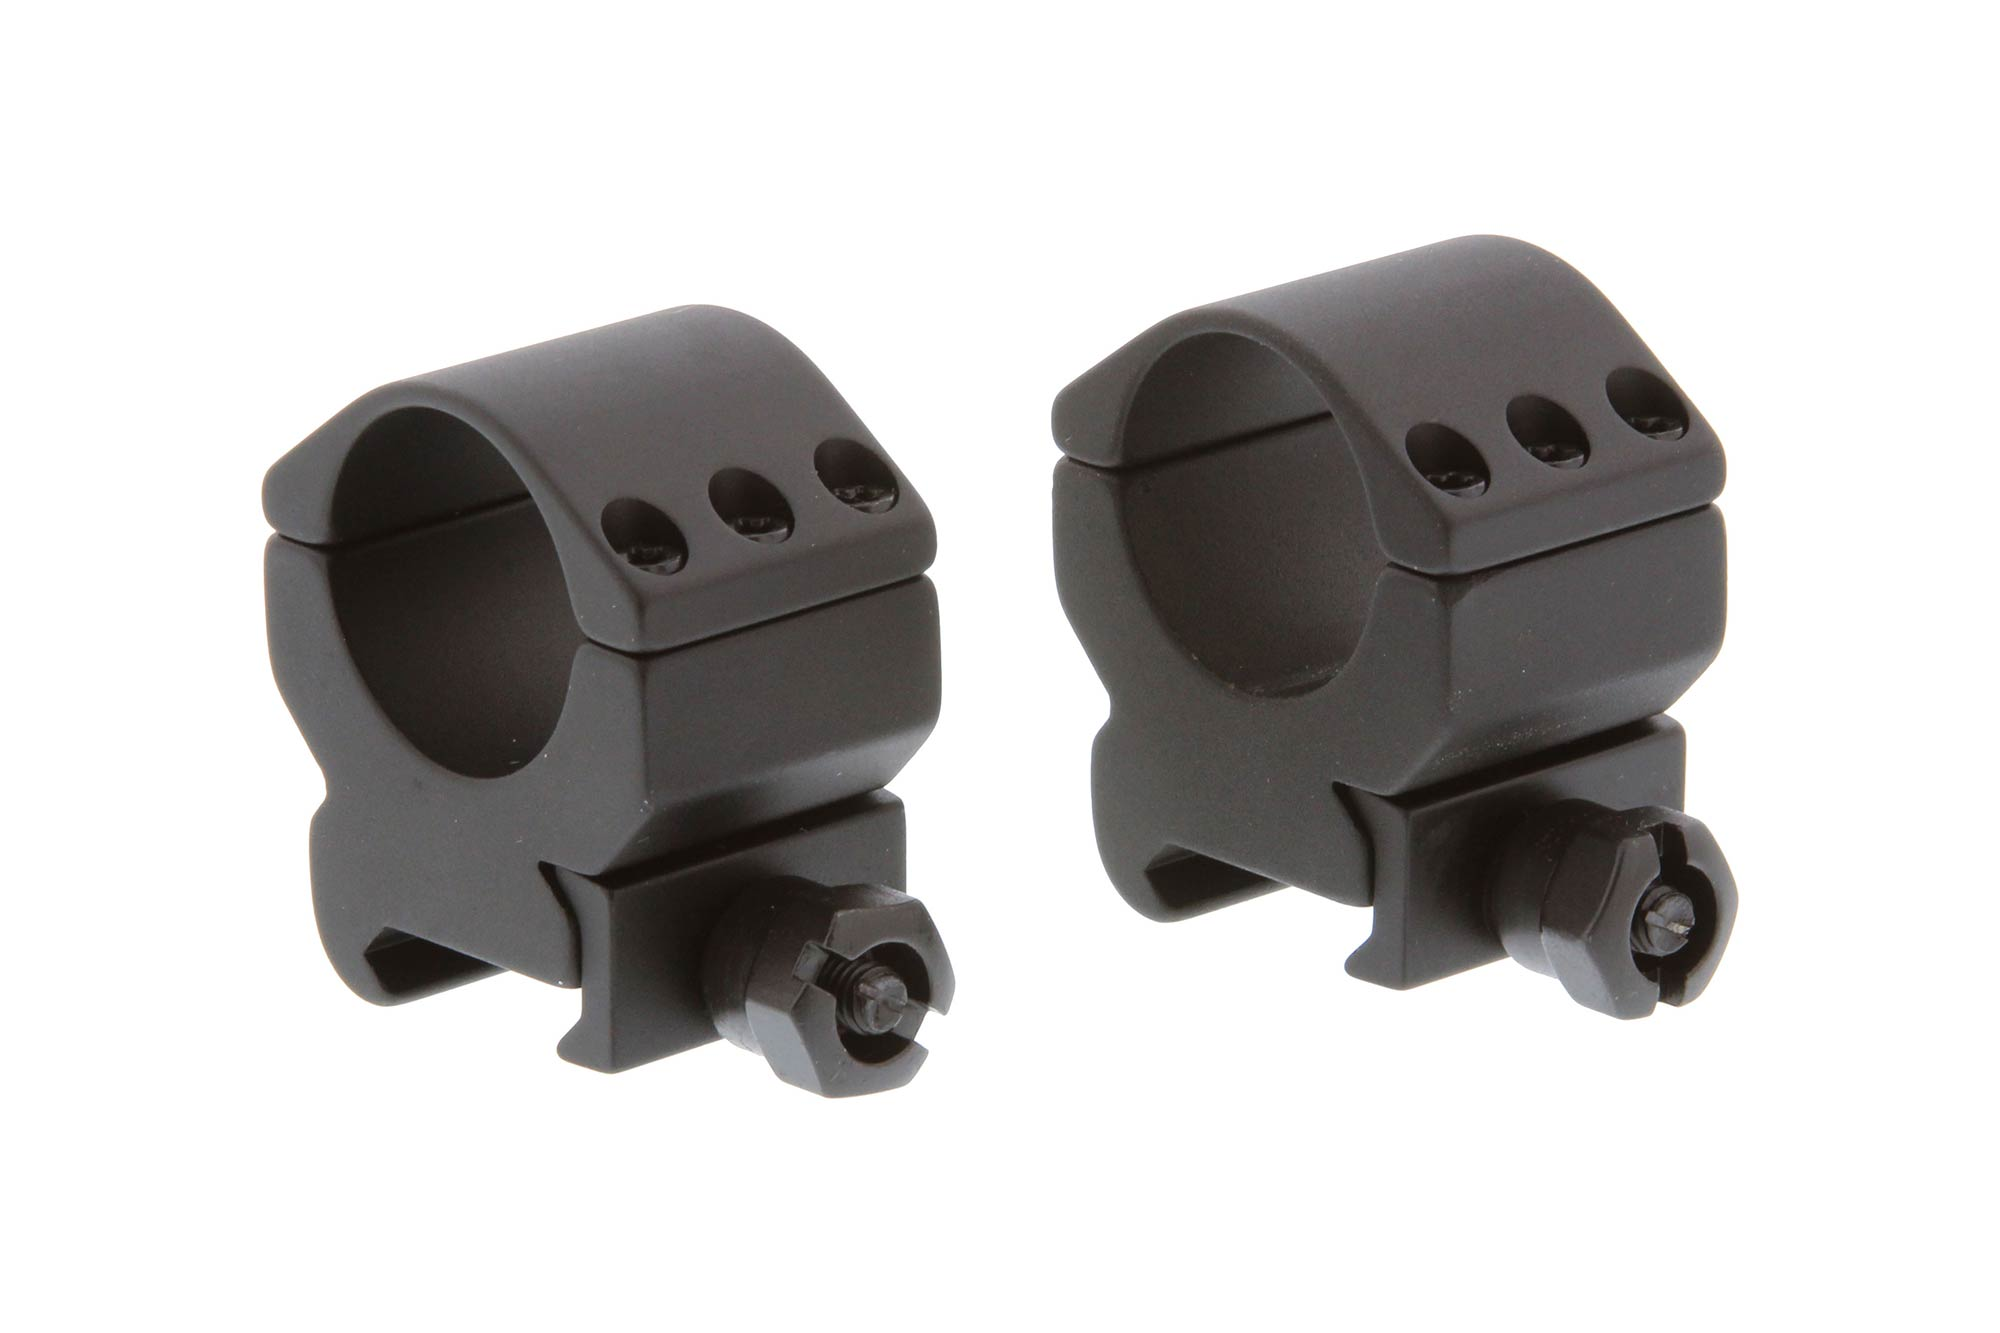 The Primary Arms Medium height 1 inch tactical scope rings are machined from aluminum